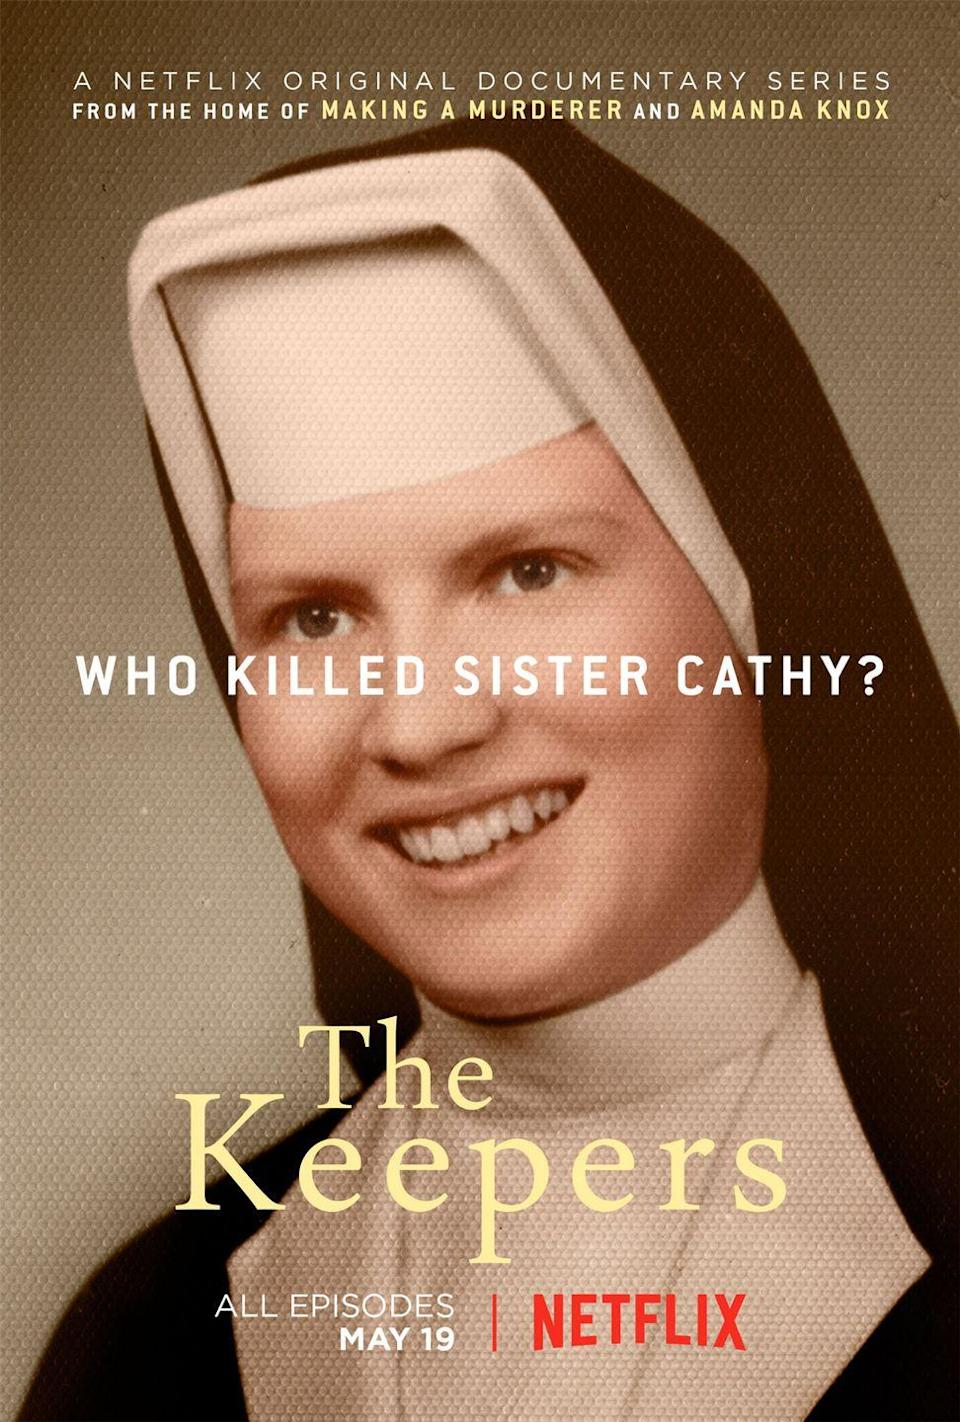 """<p>Who killed Sister Cathy? The case still isn't all-the-way cracked, but the search for the nun's murderer upturned years of shocking clergy abuse and a massive cover-up from both the church and local authorities. Hearing what harm was done to young girls in a supposed safe space will make your stomach turn. The doc centers on two women acting as amateur detectives, in an effort to keep Sister Cathy's story and compassion alive.</p><p><a class=""""link rapid-noclick-resp"""" href=""""https://www.netflix.com/title/80122179?source=35"""" rel=""""nofollow noopener"""" target=""""_blank"""" data-ylk=""""slk:Watch Now"""">Watch Now</a></p>"""